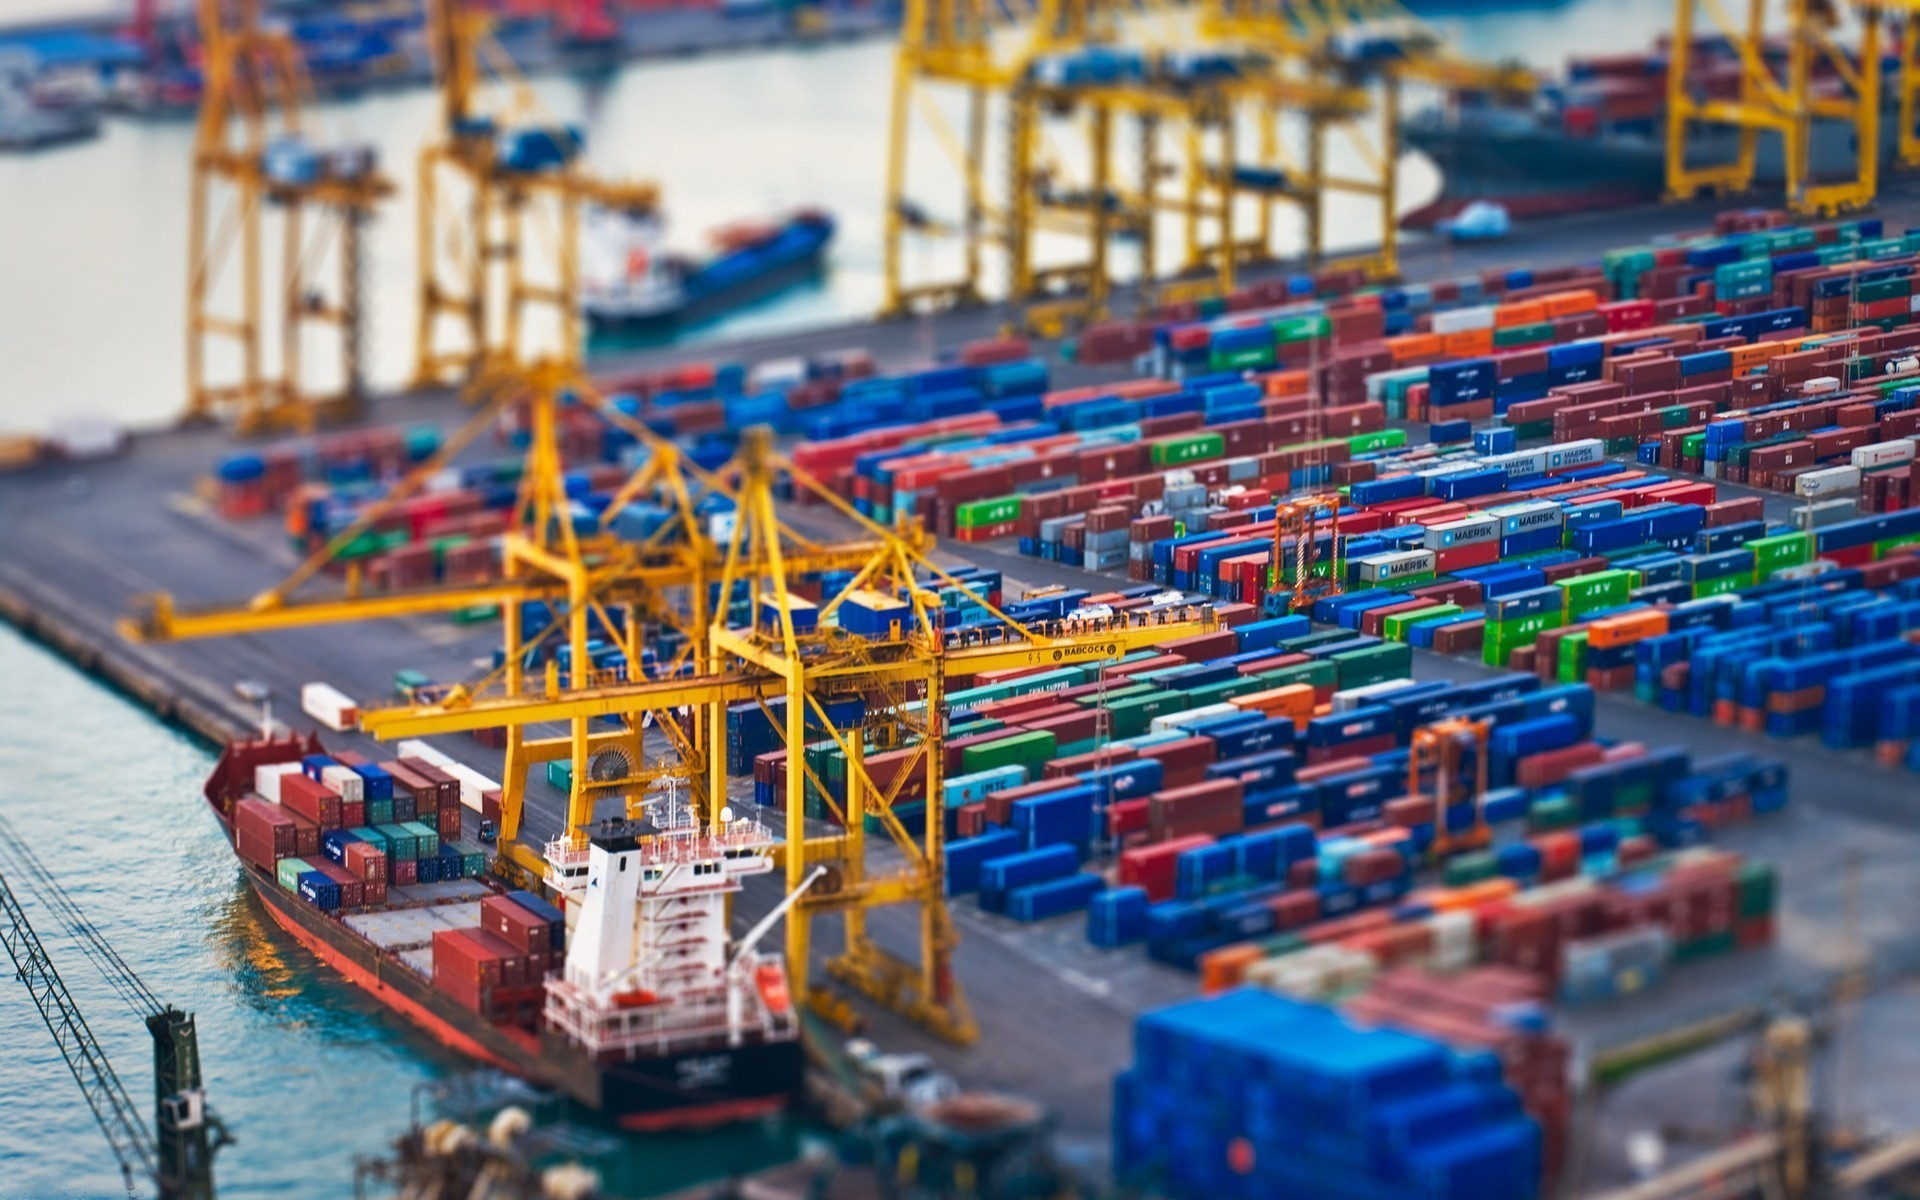 shipping-containers-ships-tilt-shift-vehicles